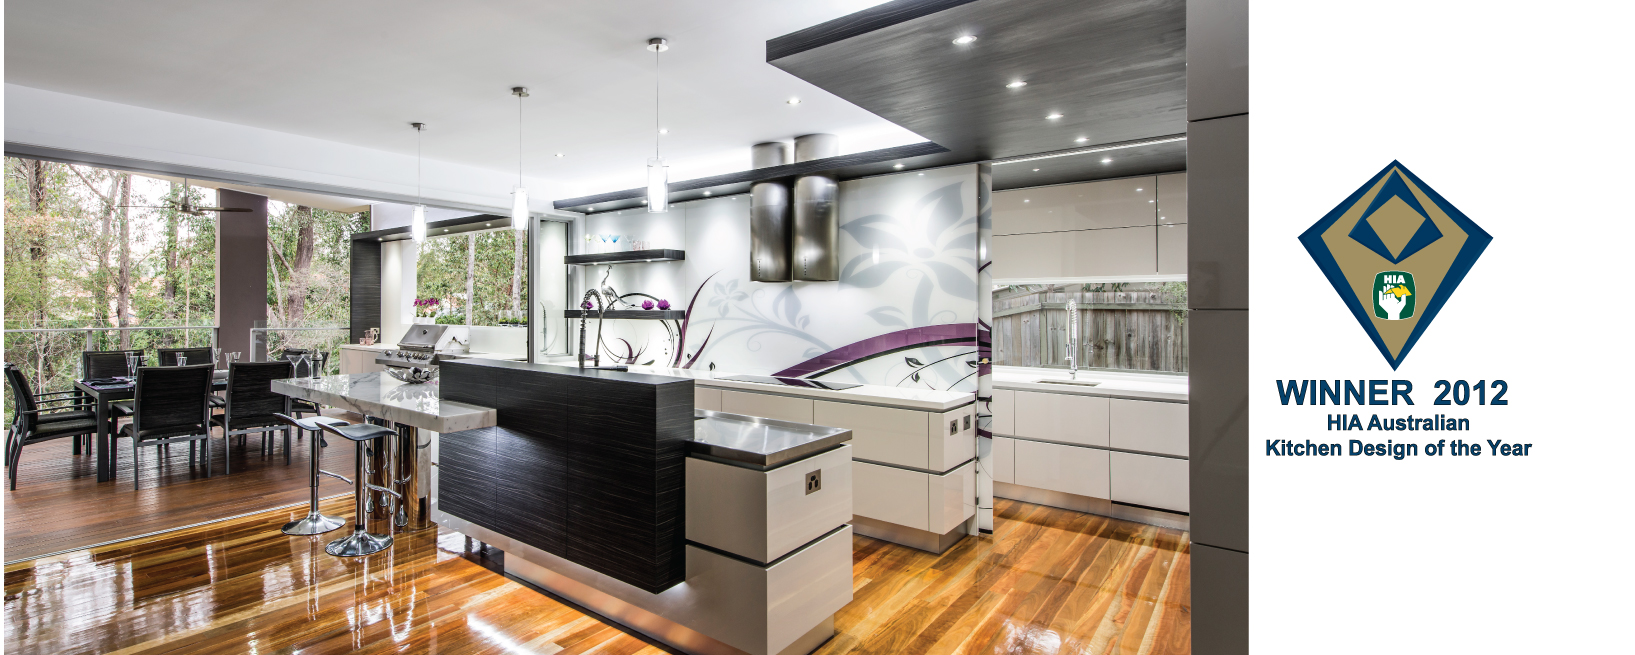 HIA Australian Kitchen Design of the Year -Kim Duffin